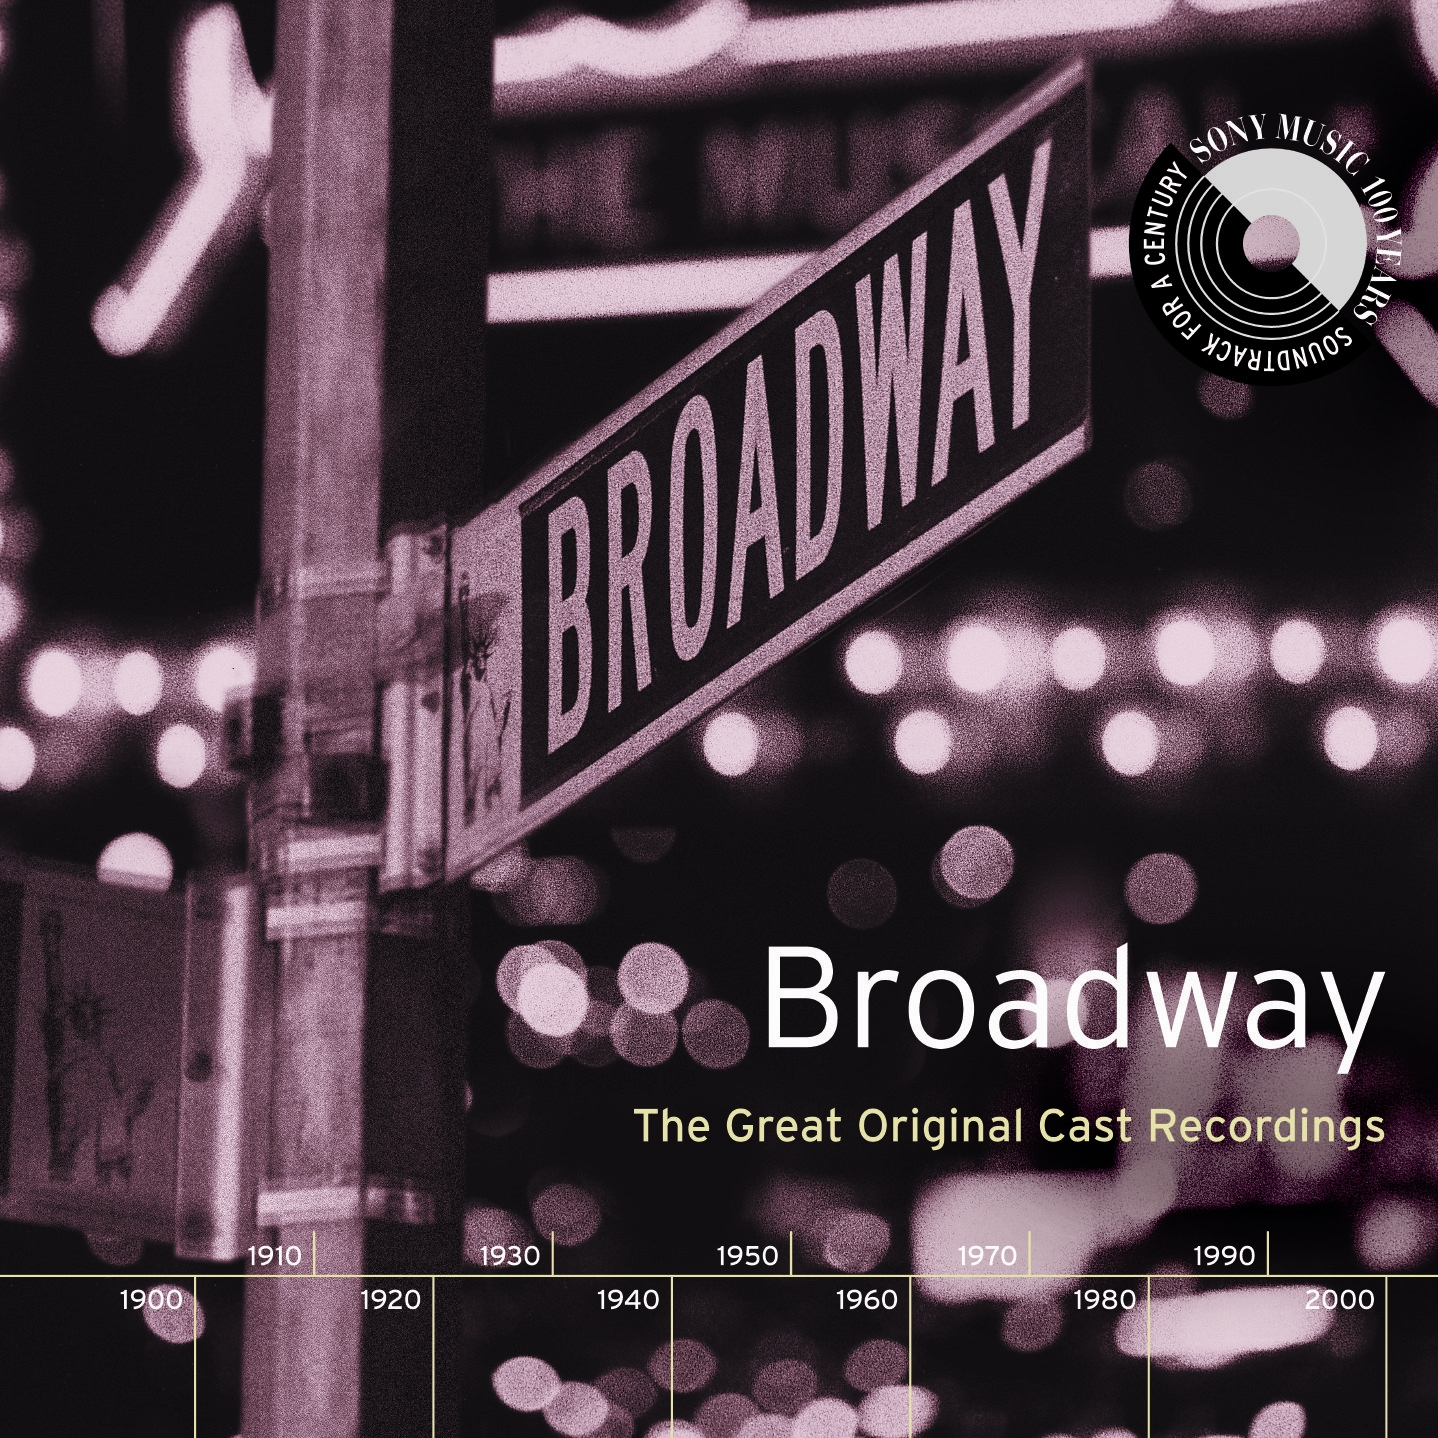 Broadway: The Great Original Cast Recordings